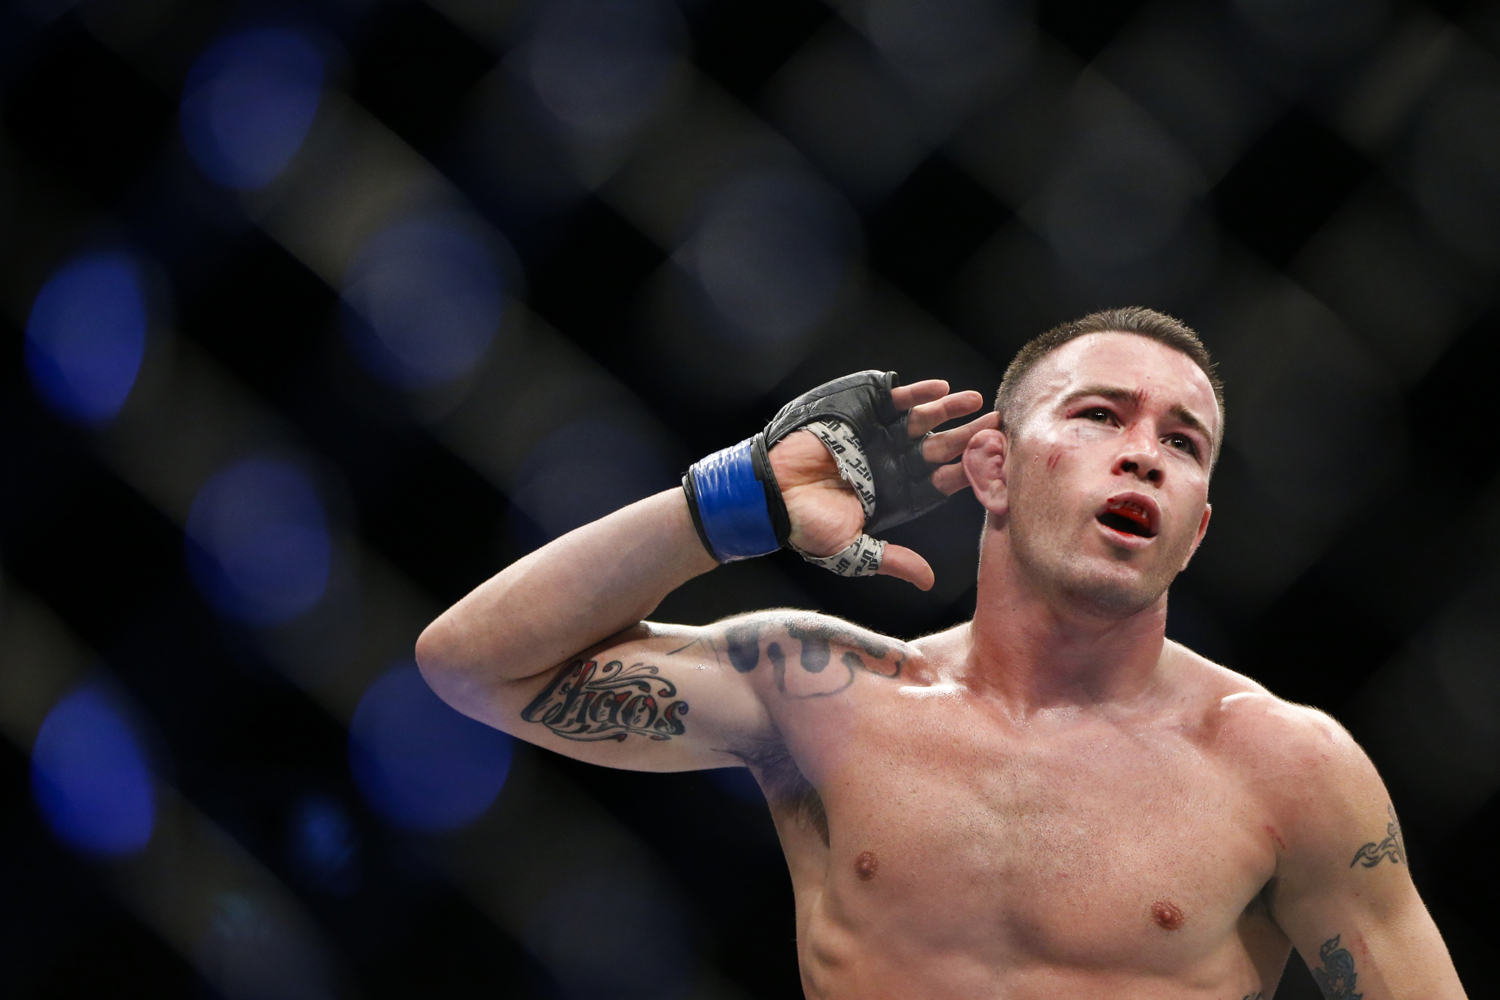 Colby Covington of the United States reacts after his welterweight bout win over Dong Hyun Kim of South Korea at the UFC Fight Night at the Singapore Indoor Stadium on June 17, 2017.